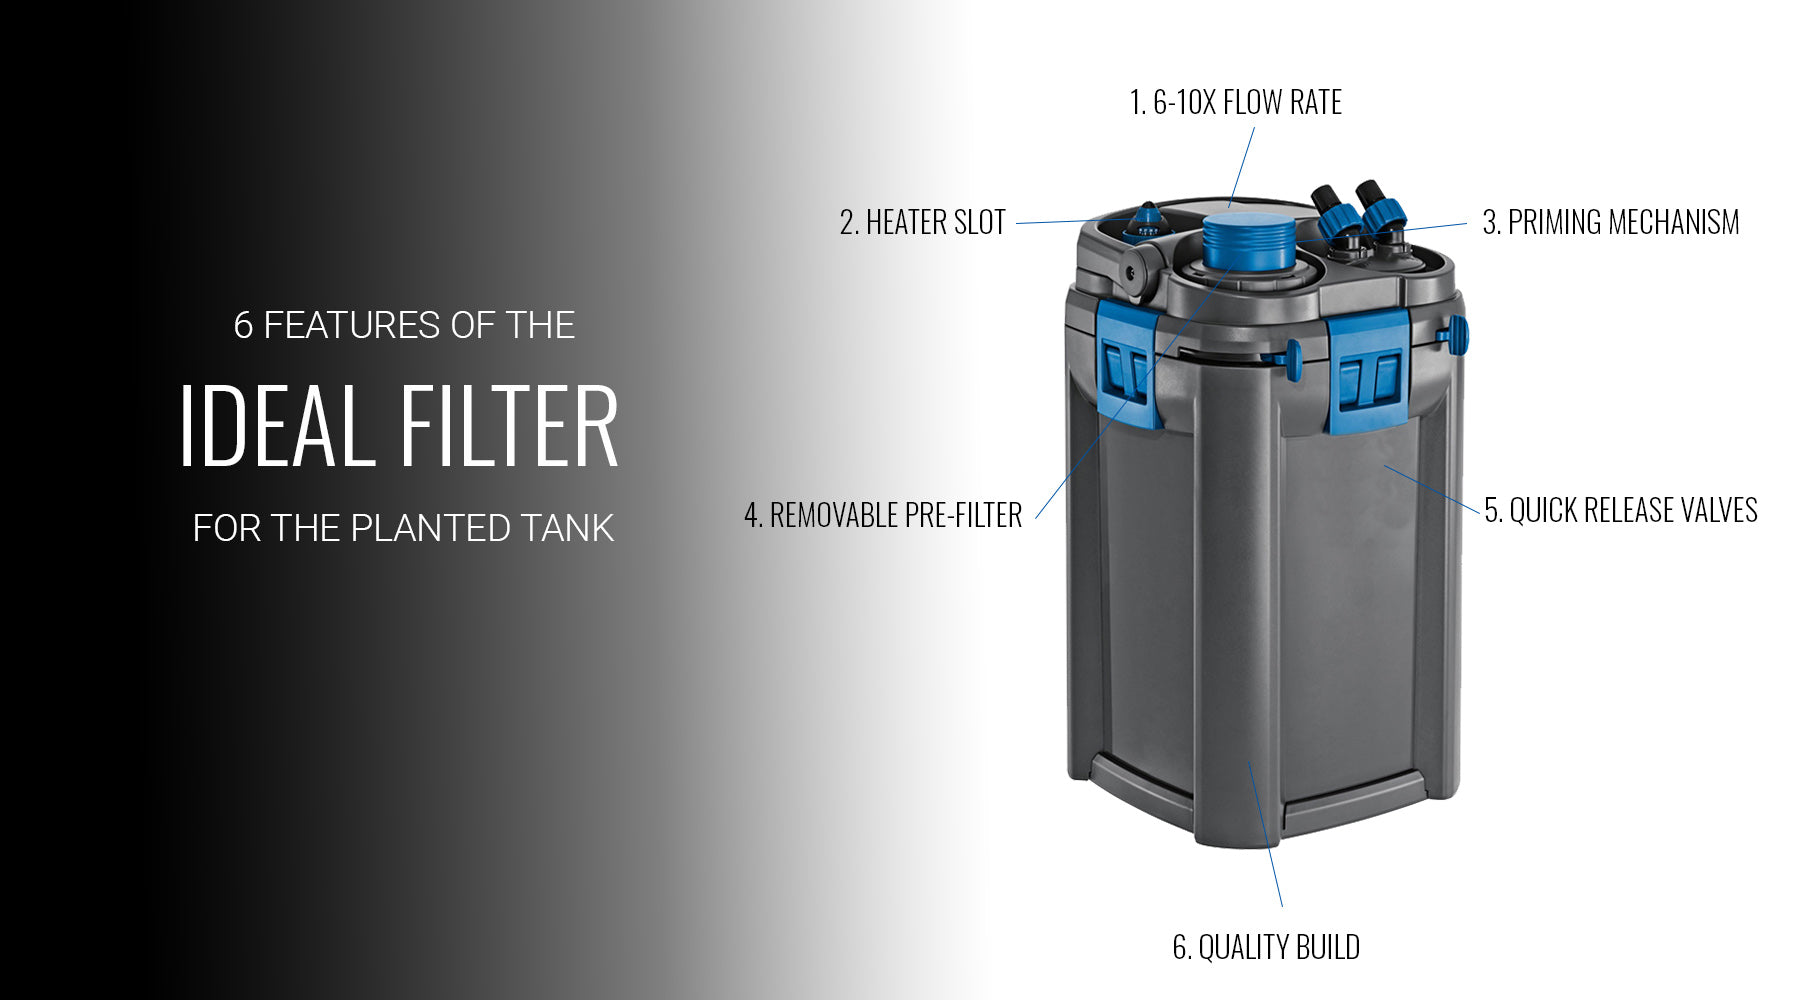 6 features of an ideal planted tank filter